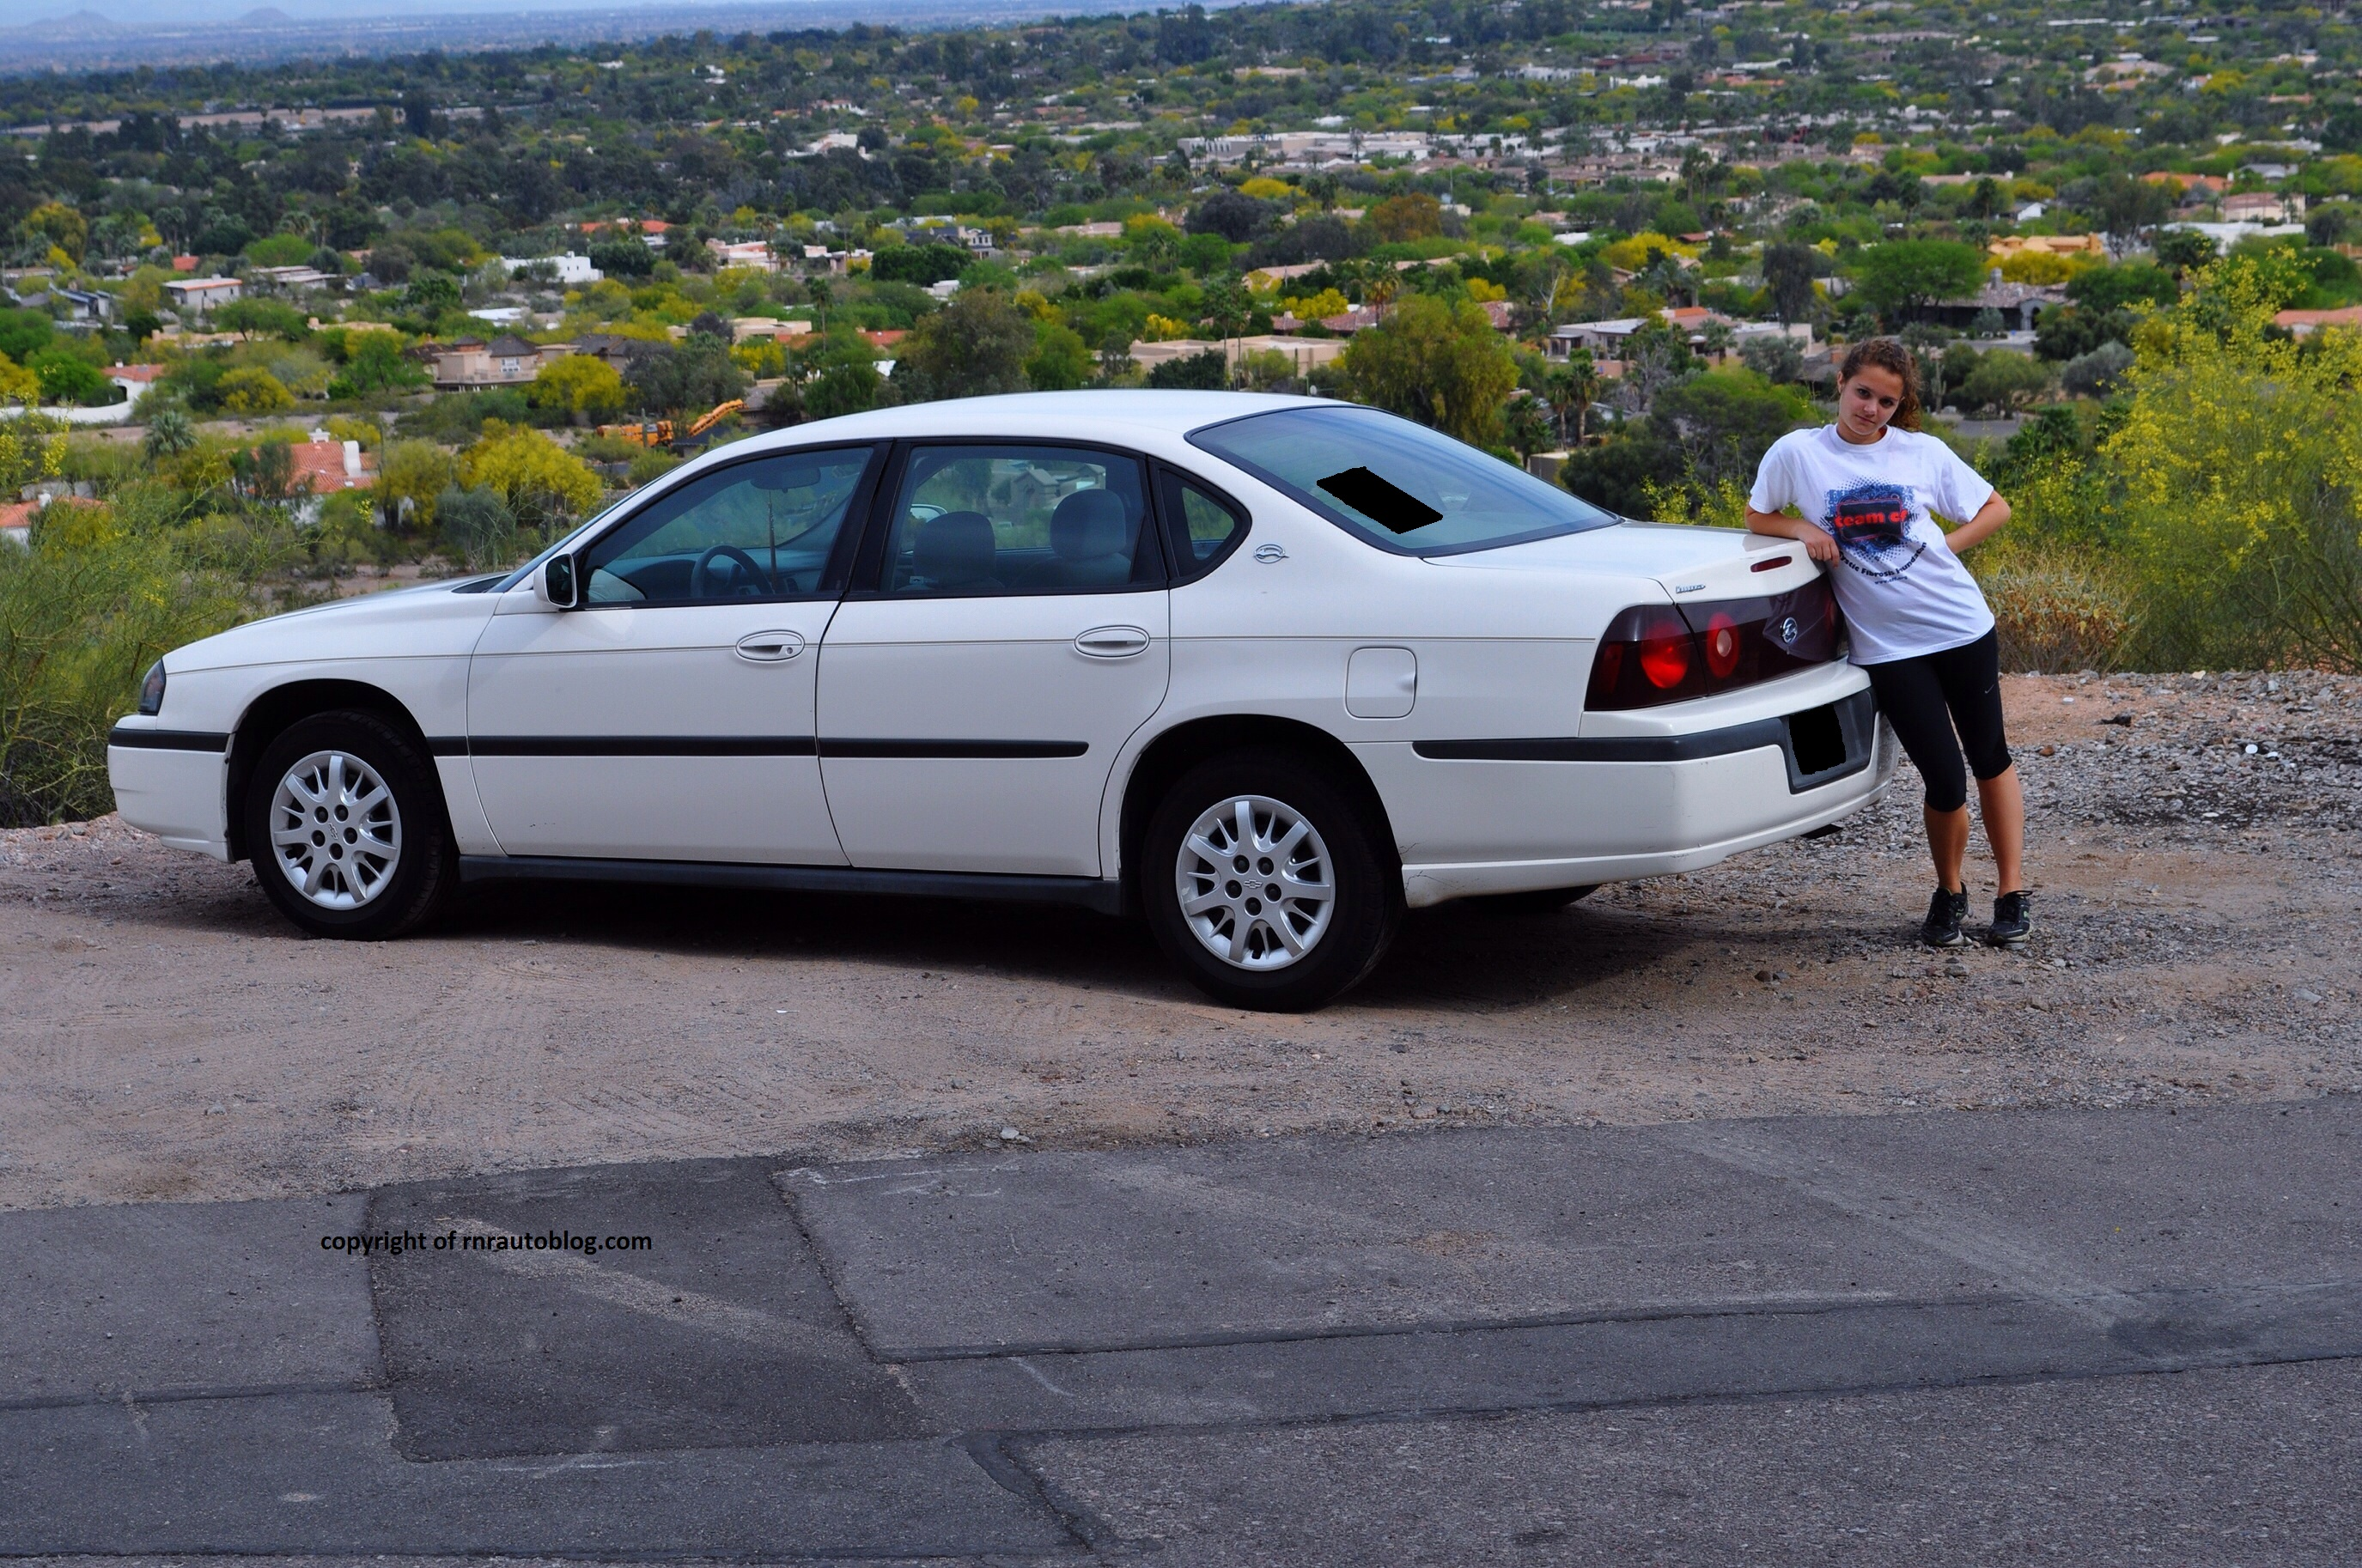 2003 chevrolet impala base review rnr automotive blog. Cars Review. Best American Auto & Cars Review